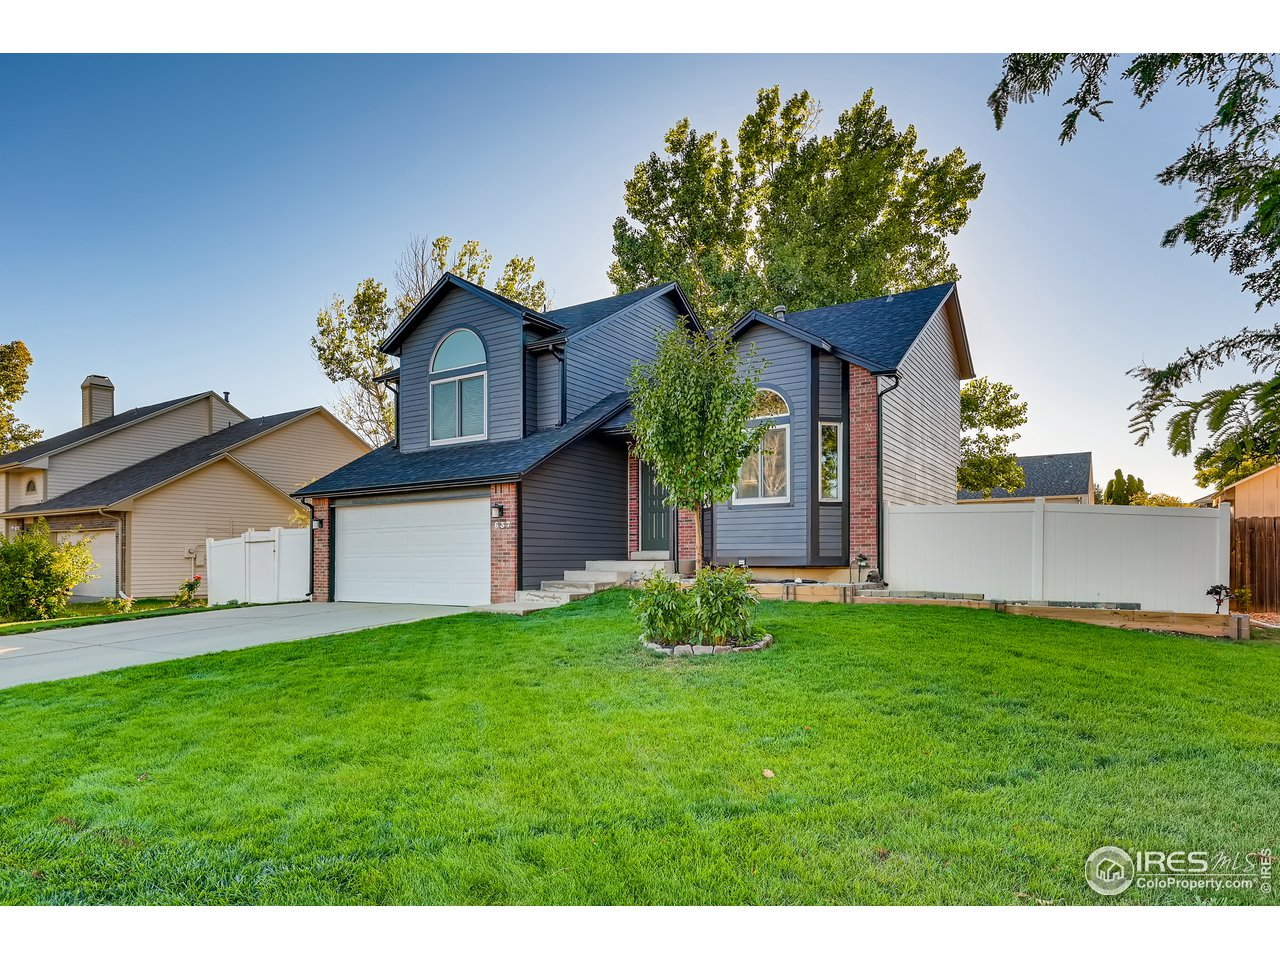 637 50th Ave, Greeley CO 80634